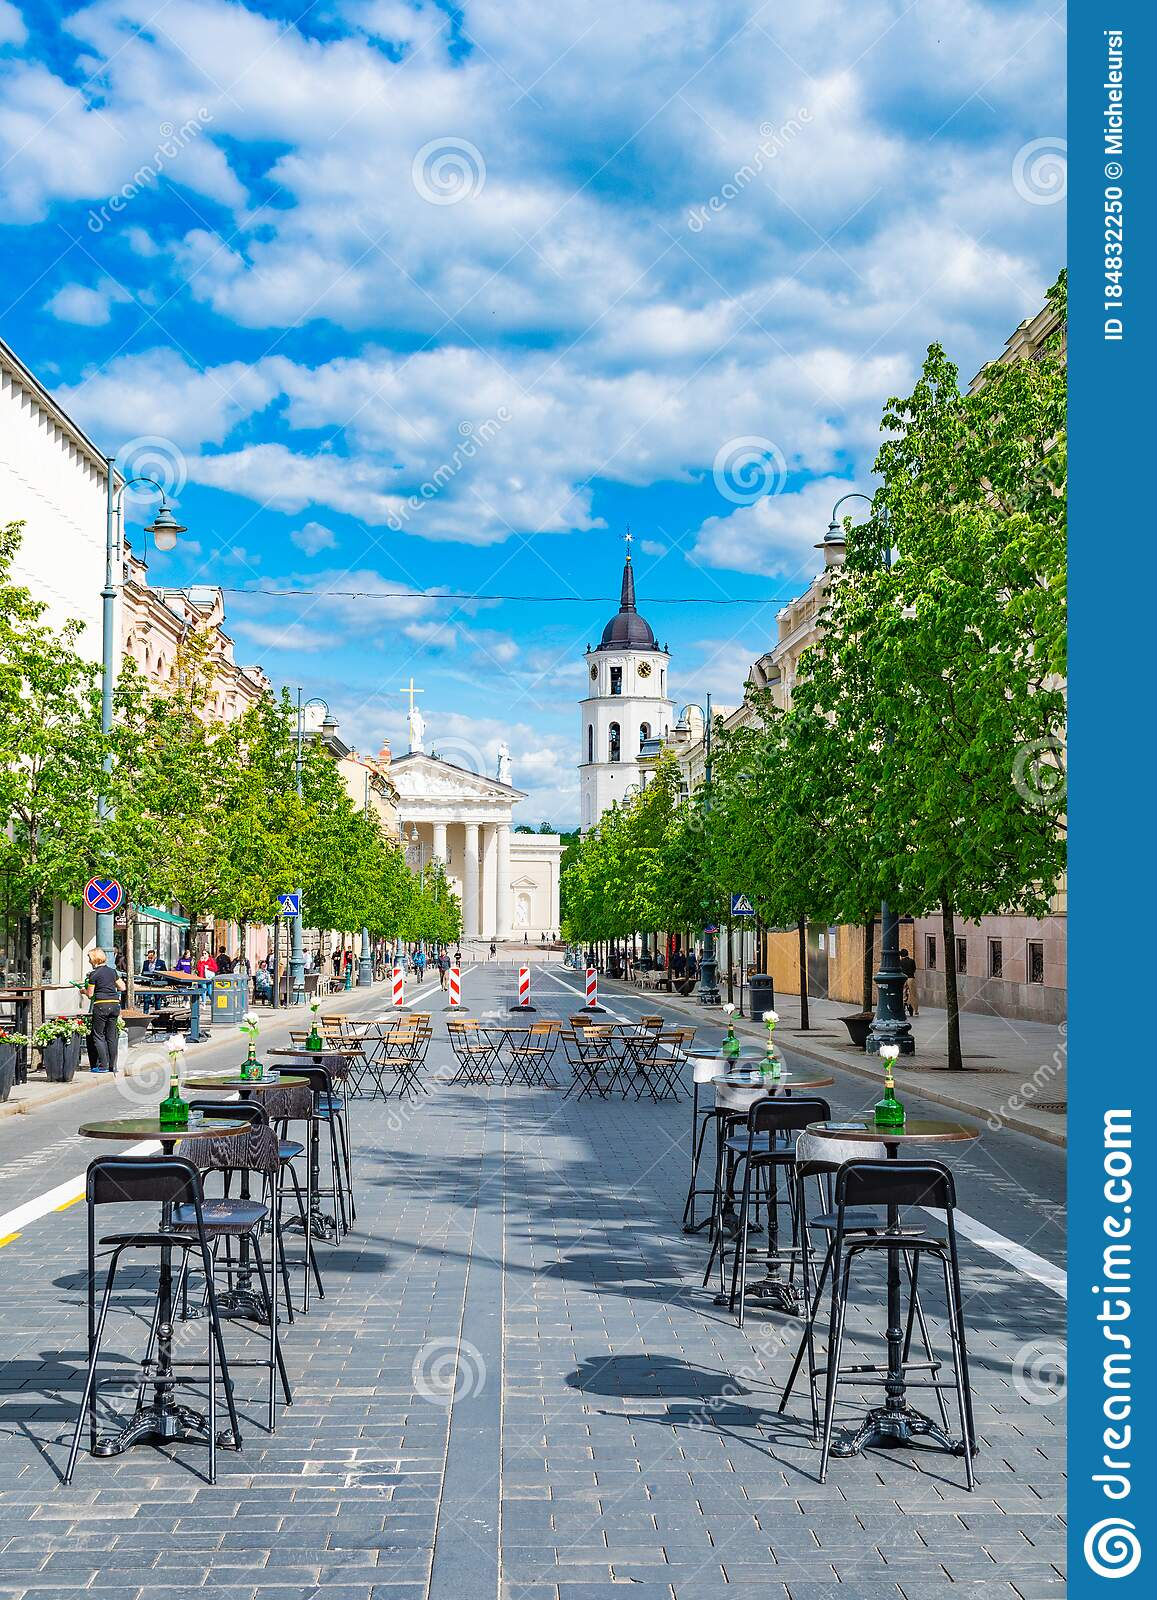 Outdoor Bar And Restaurant In Vilnius Lithuania Editorial Image Image Of Quarantine Distancing 184832250